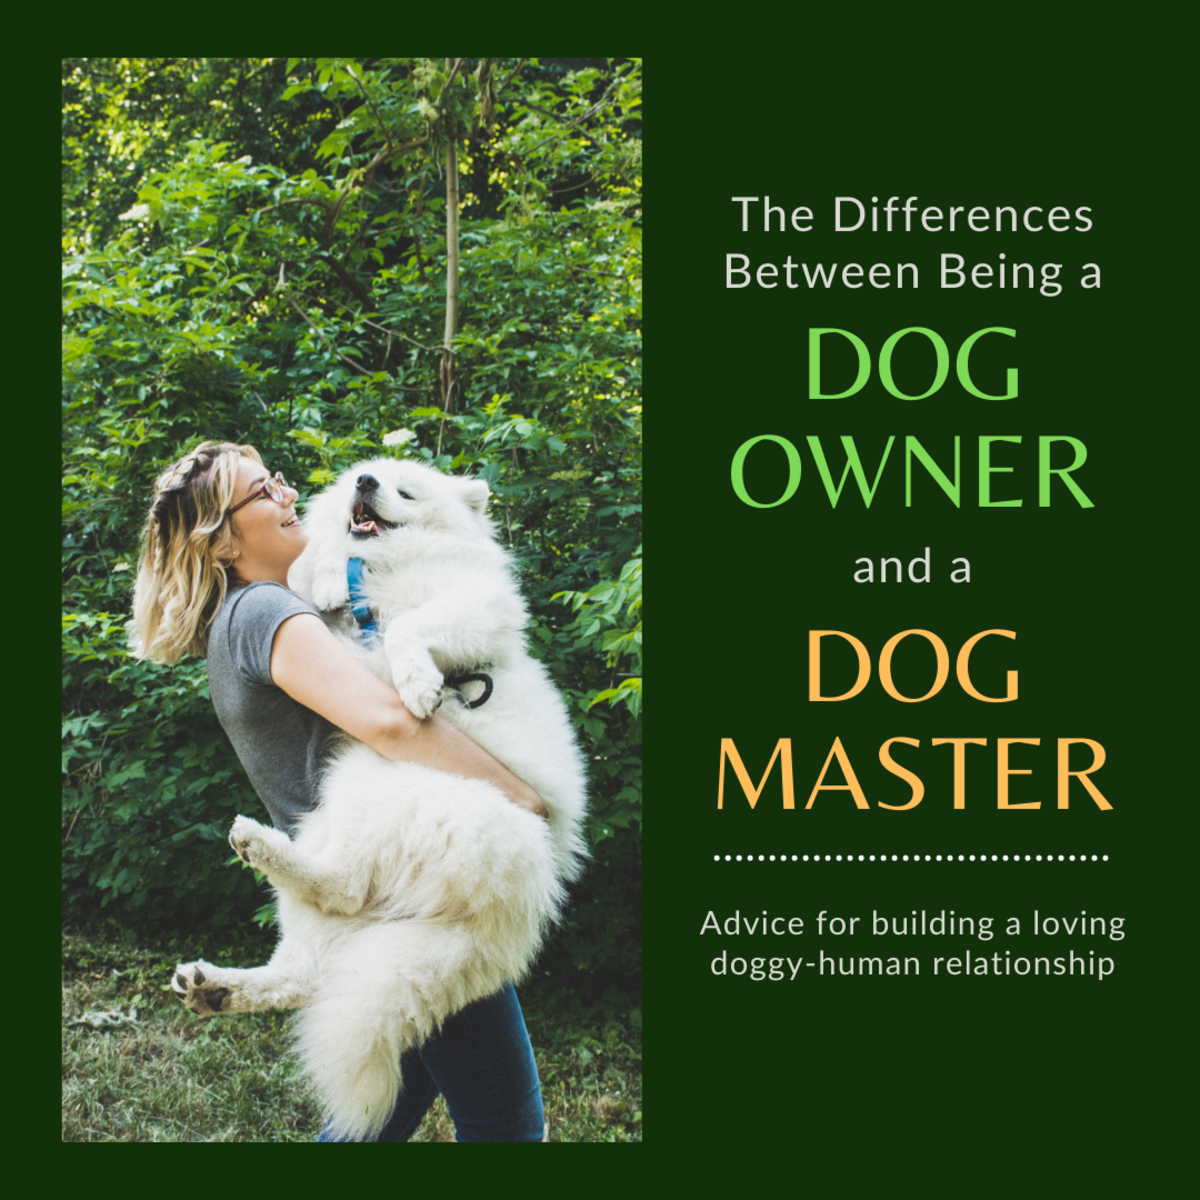 The Differences Between Being a Dog Owner and a Dog Master